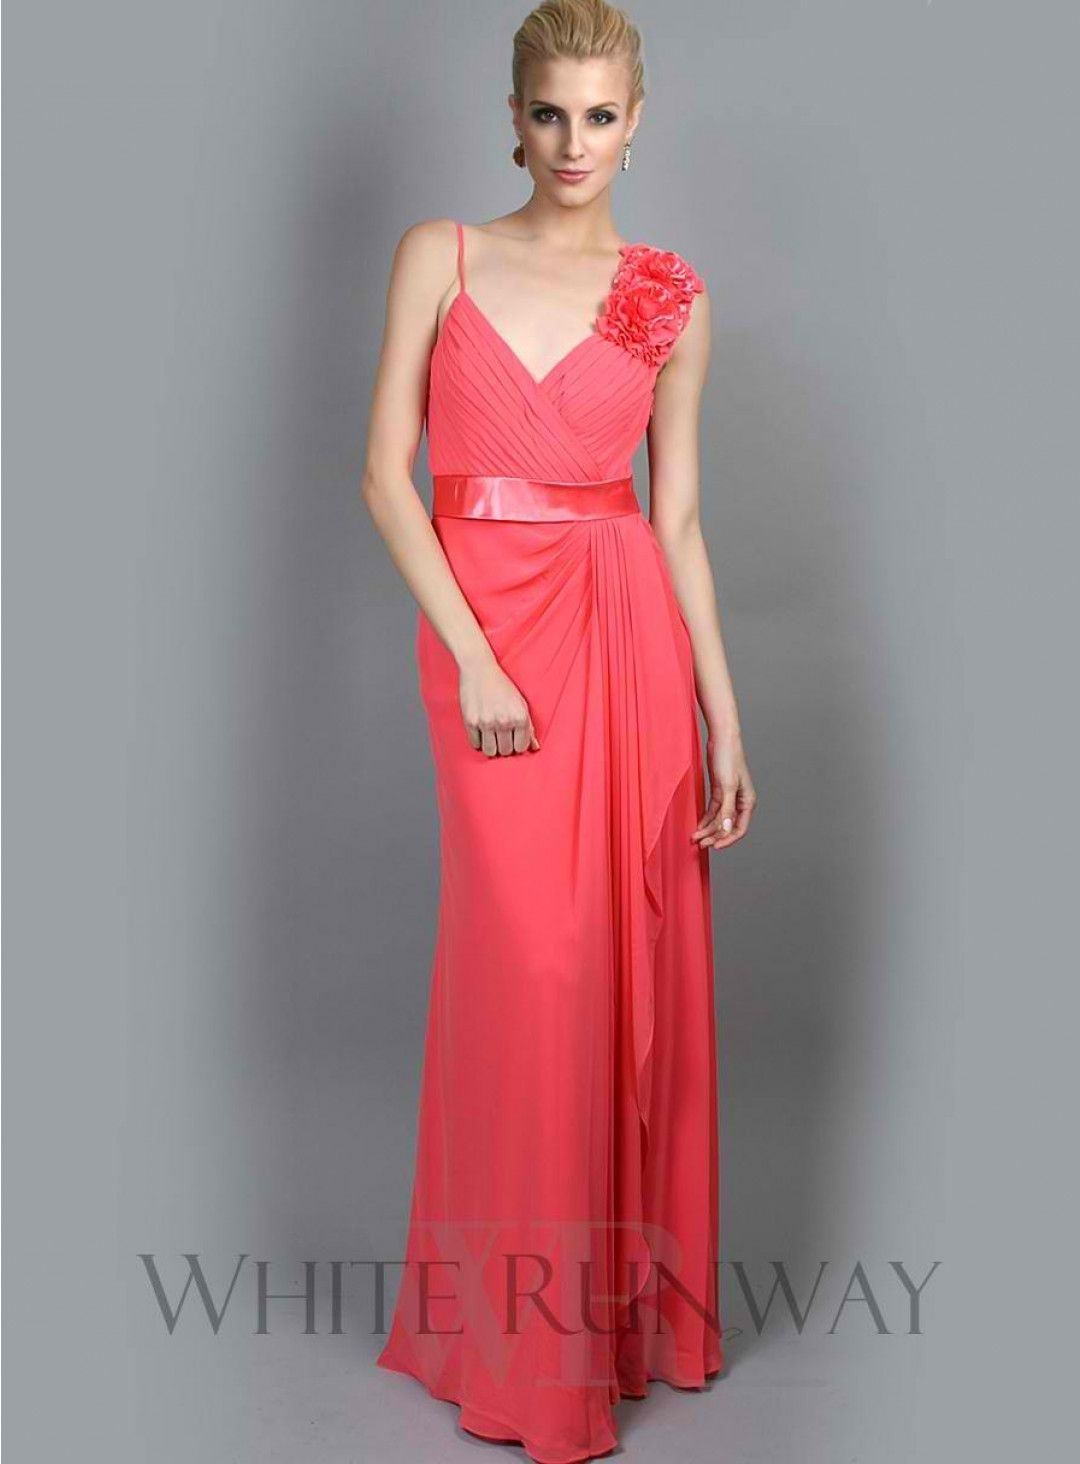 Gorgeous dress for wedding party  Posies Dress Full length chiffon dress with floral detail on the